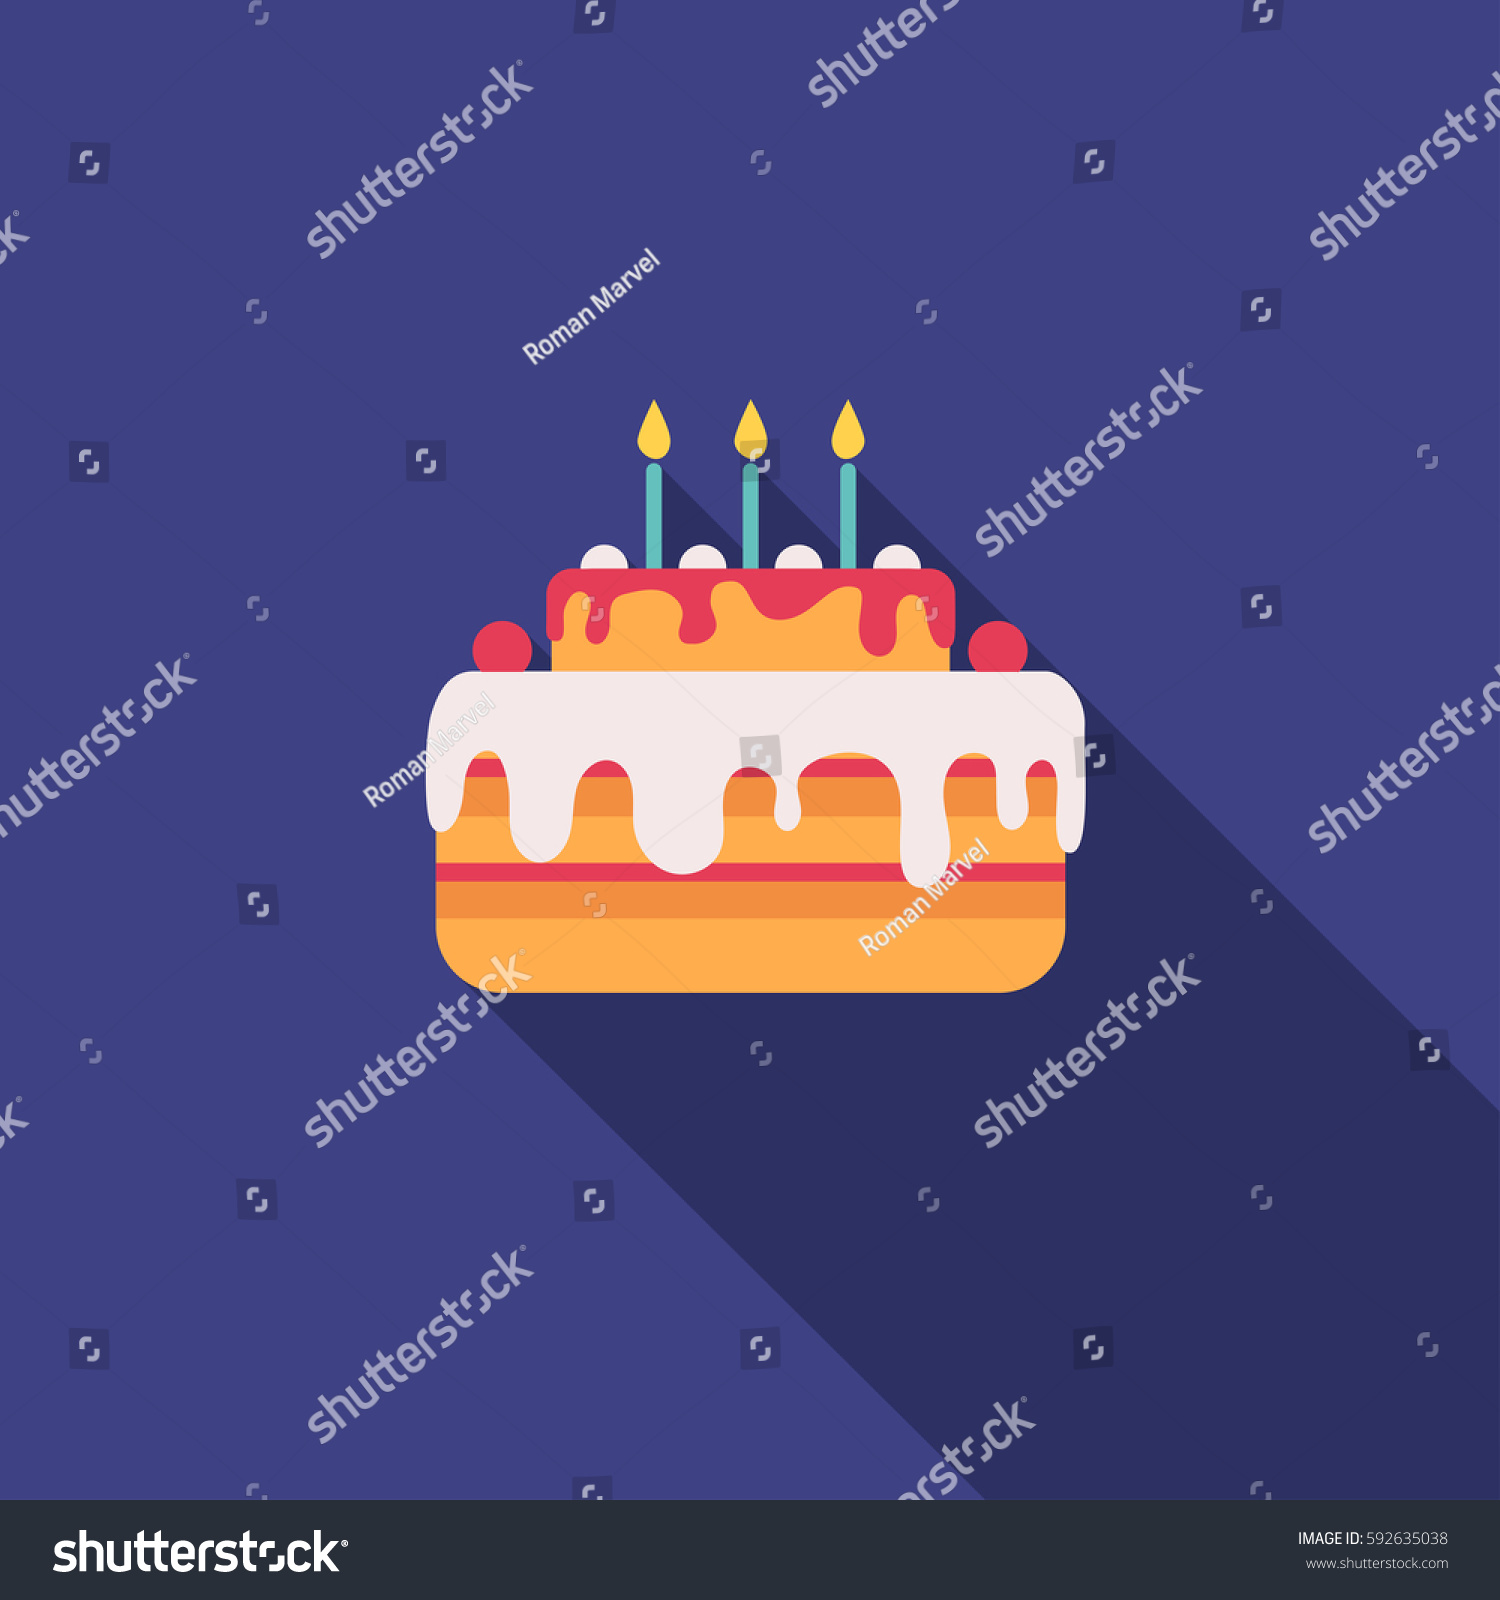 Cake Pie Birthday Candles Blue Stock Vector 592635038 Shutterstock